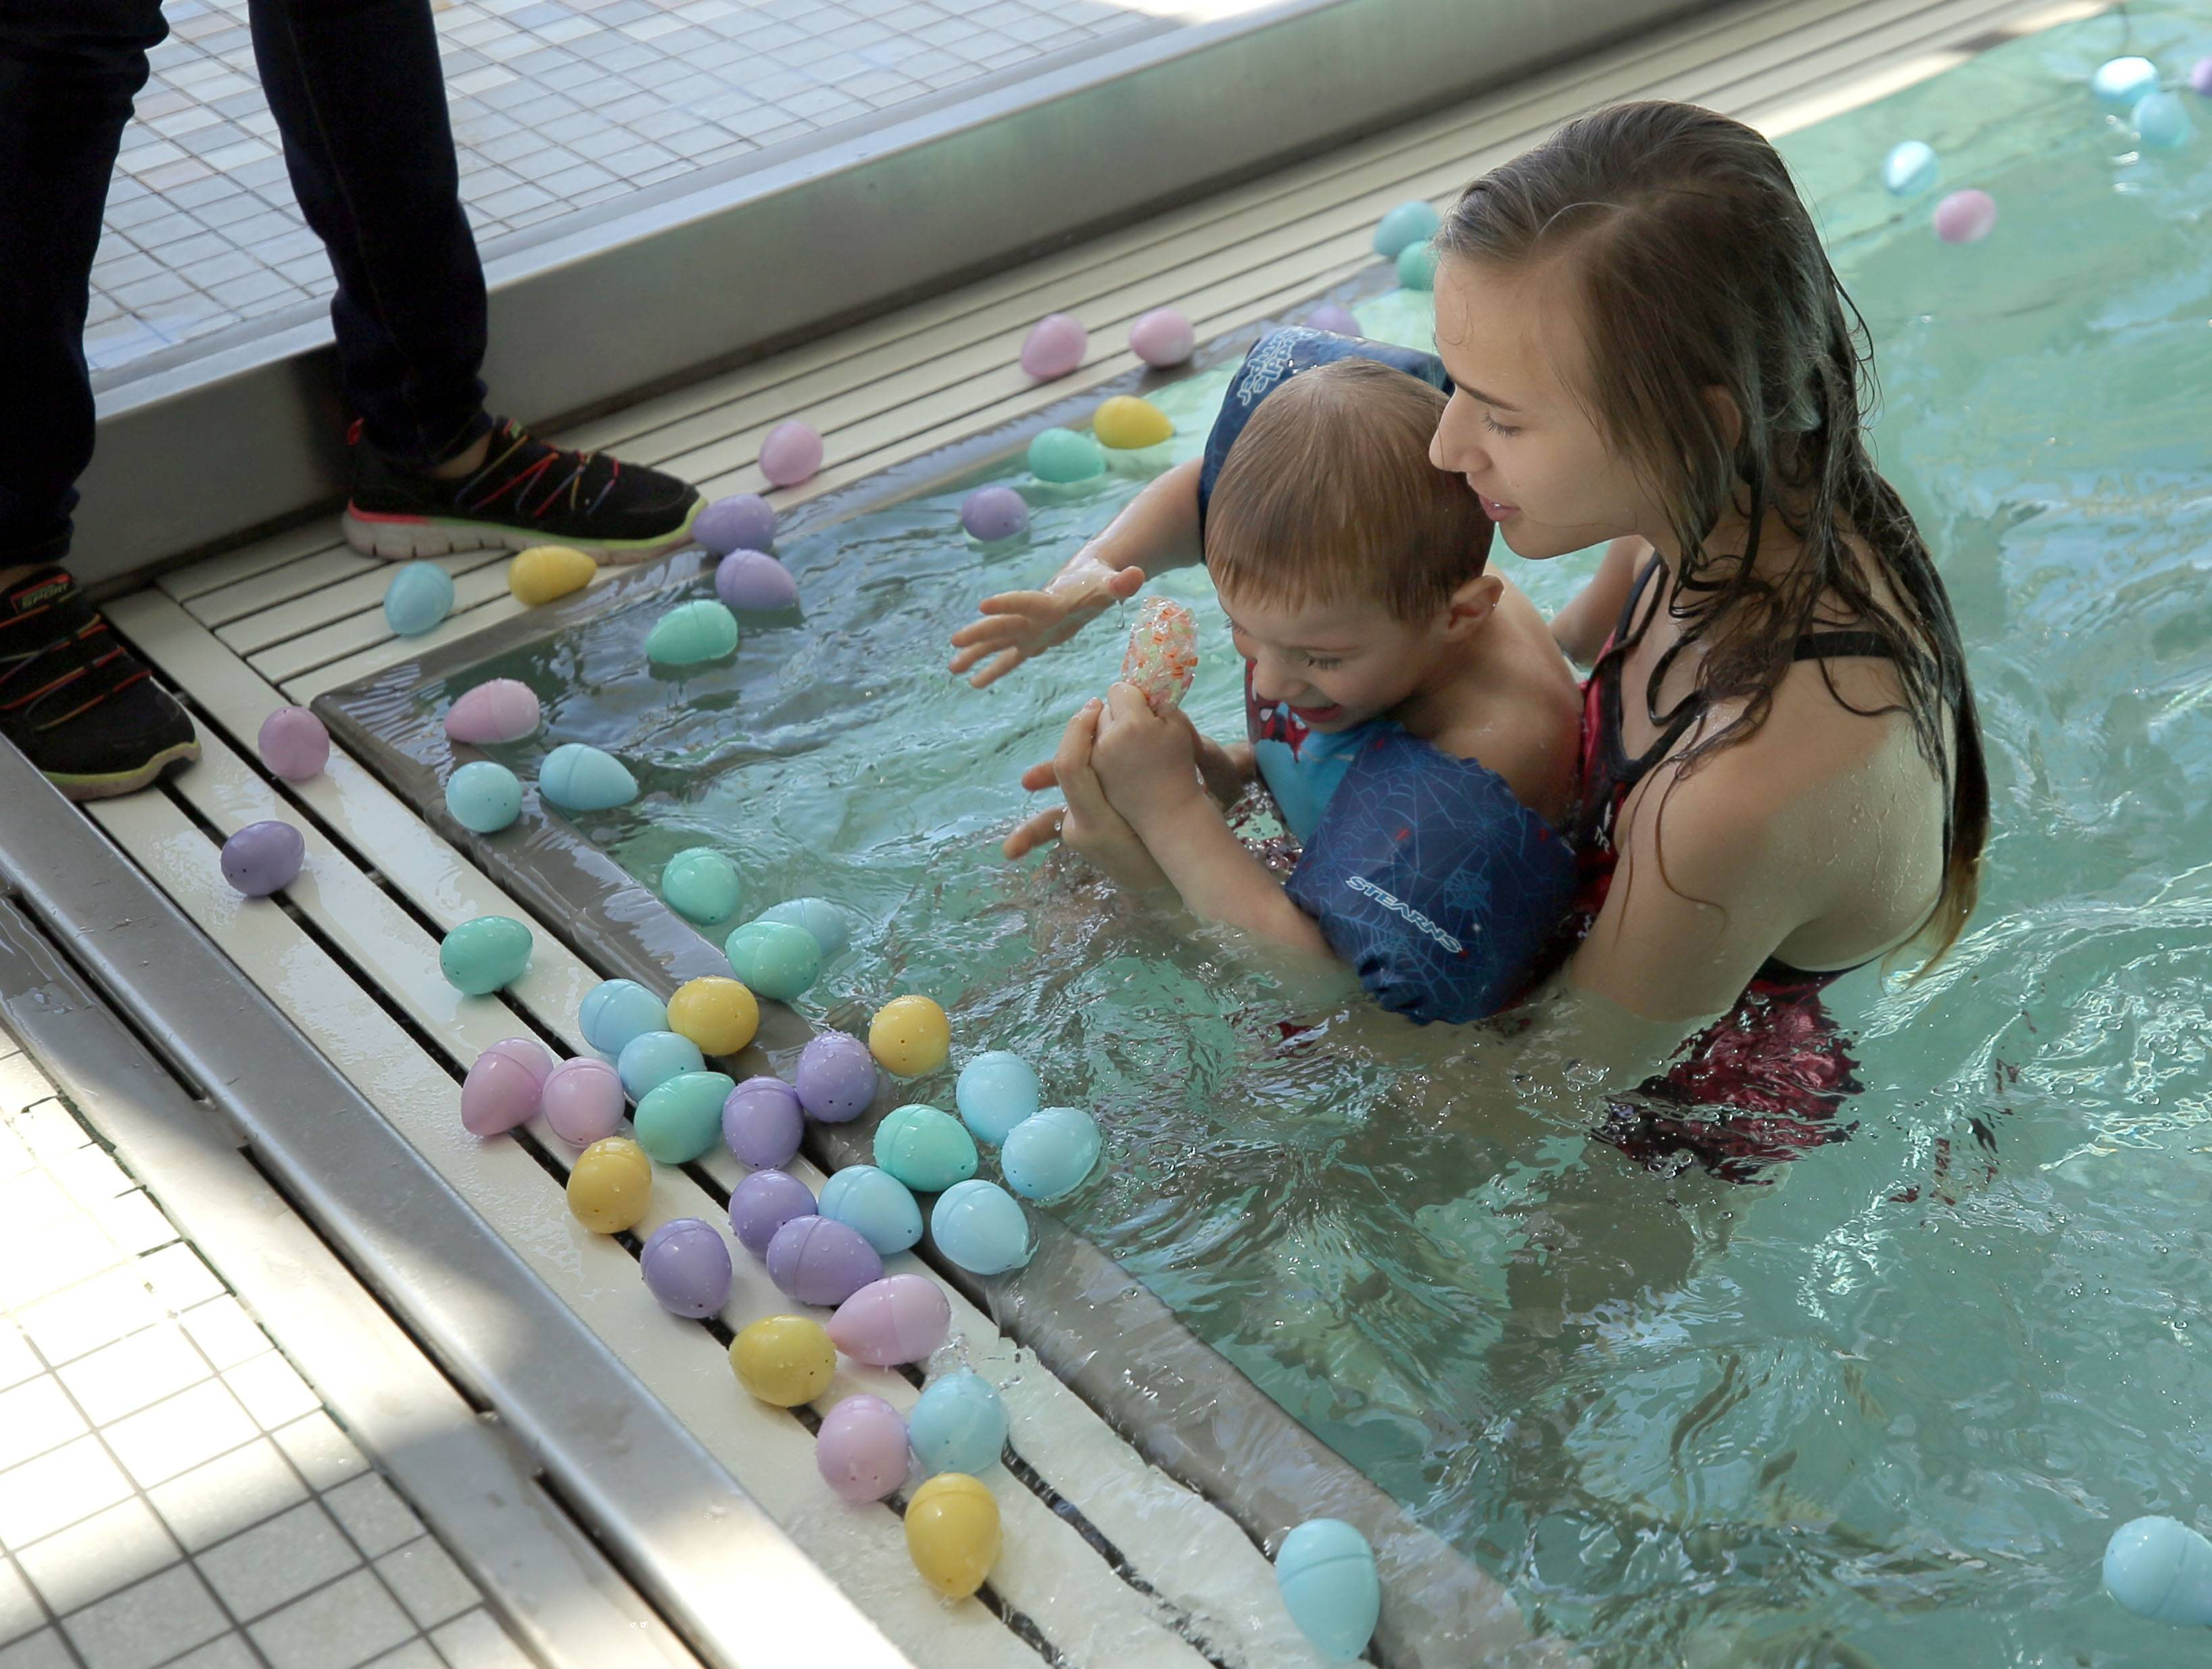 Maya Kieltyka, 12, of Hoffman Estates and her 3-year-old brother Alexander try to scoop up eggs as kids put on their swimsuits and goggles for an Aqua Egg Hunt at the Club at Prairie Stone in Hoffman Estates Saturday.